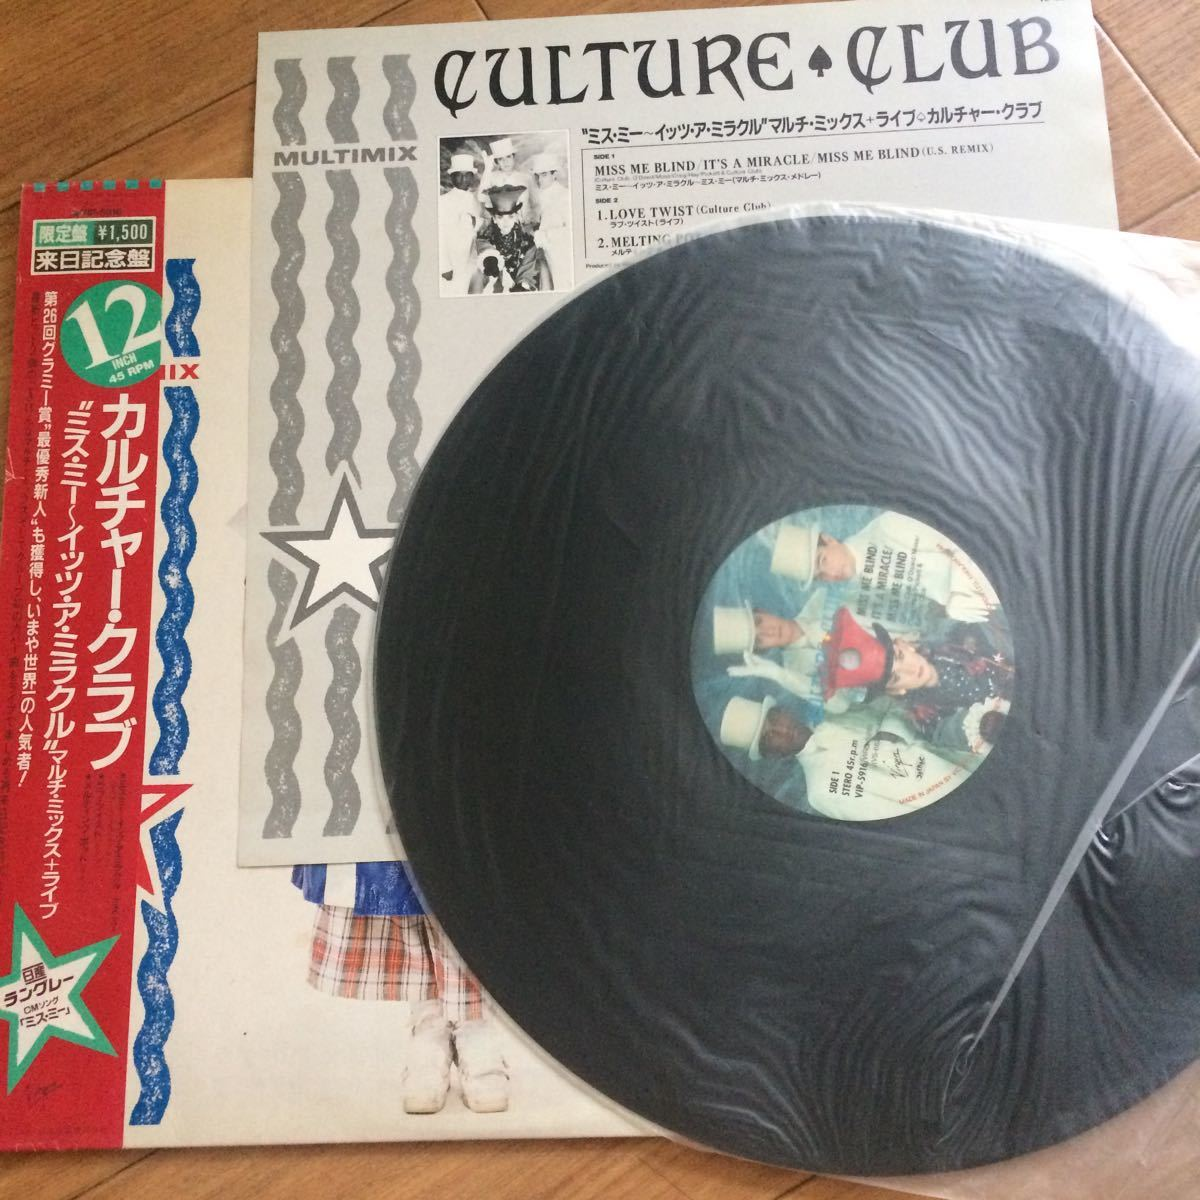 12' Culture Club-It's Miracle/Miss me blind_画像3